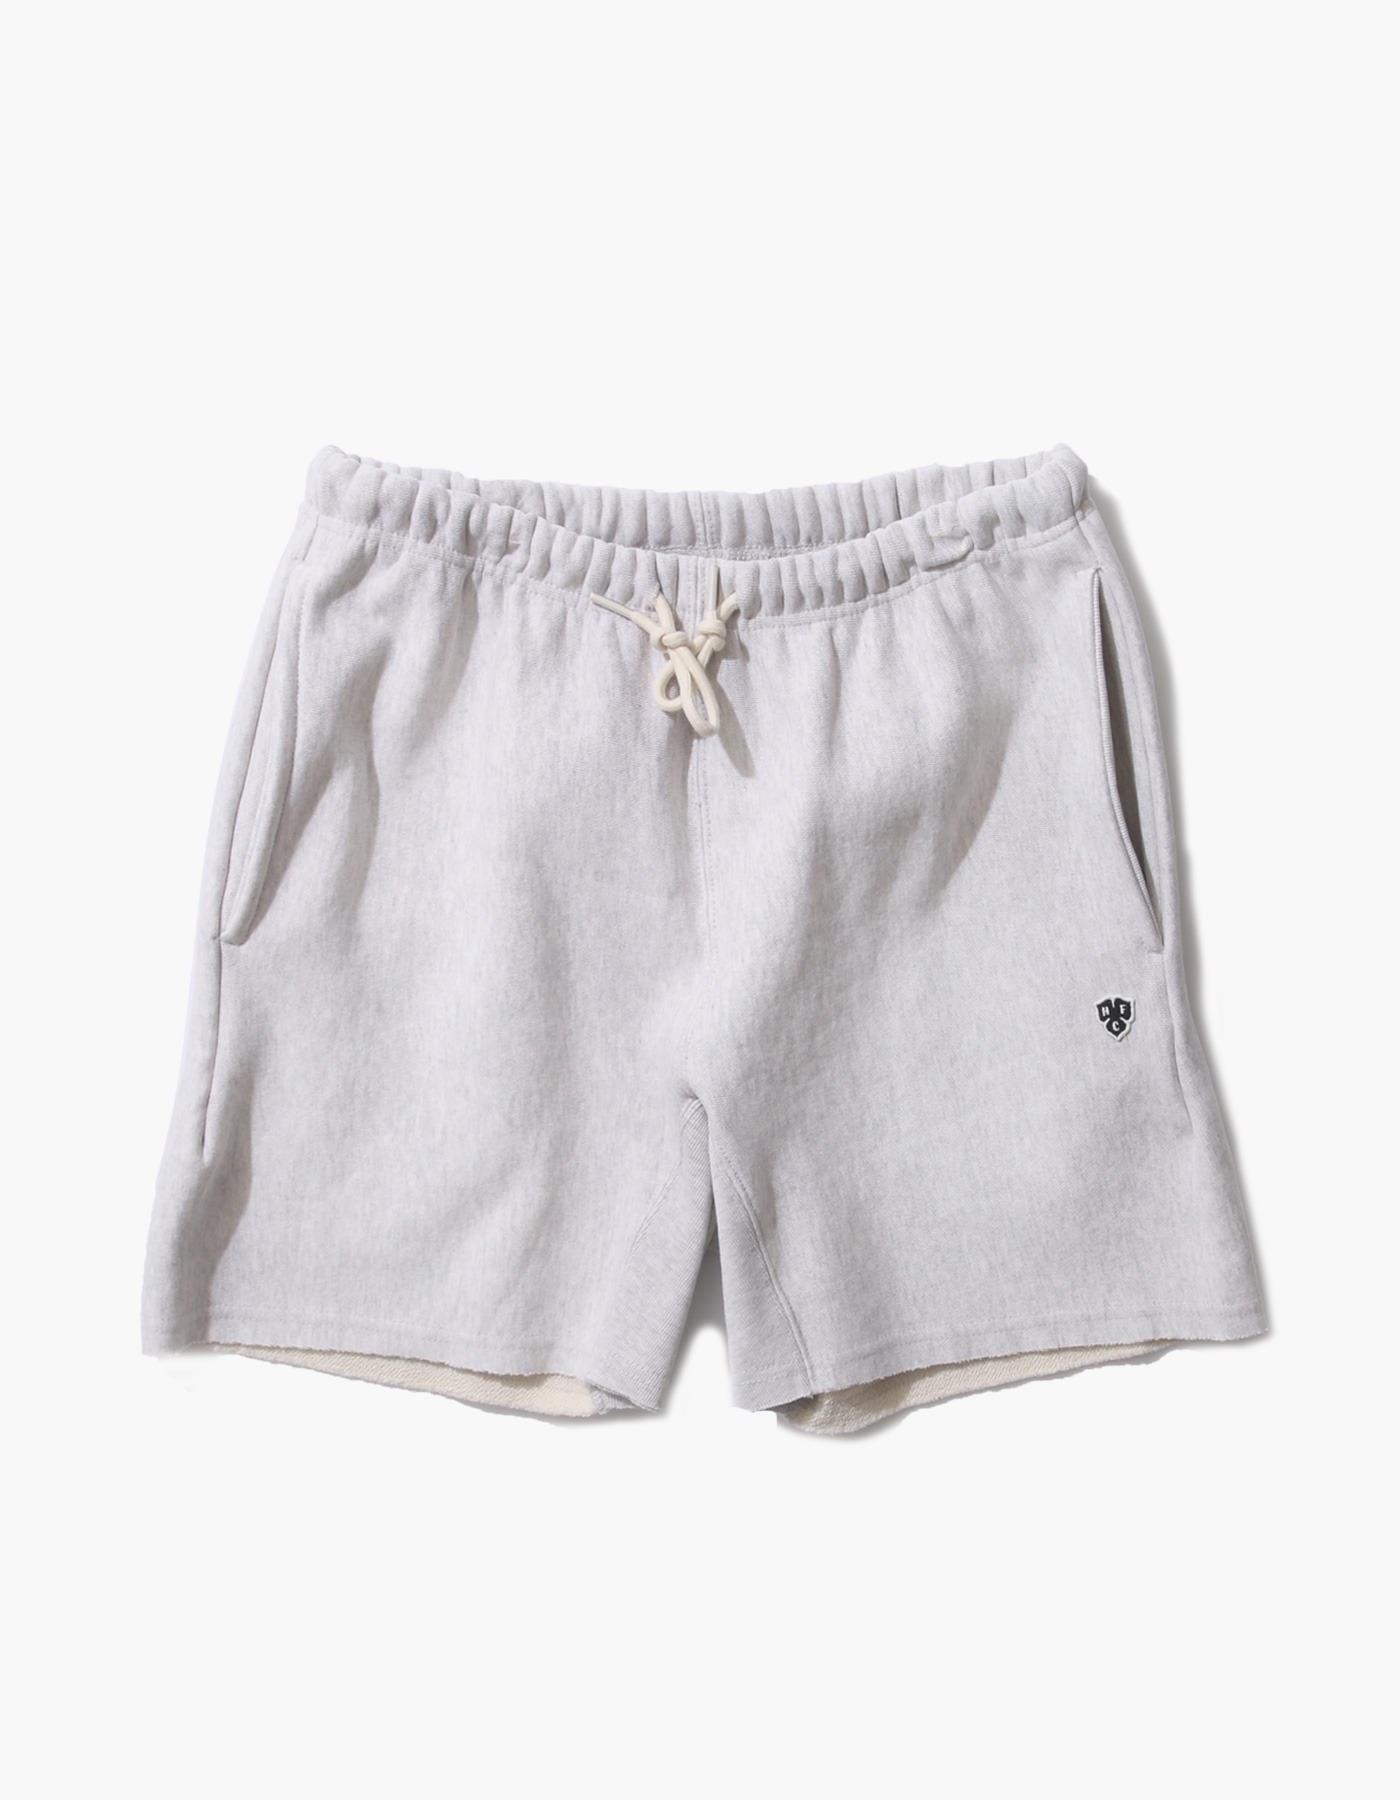 321 GYM SHORTS / M.GREY (1%)